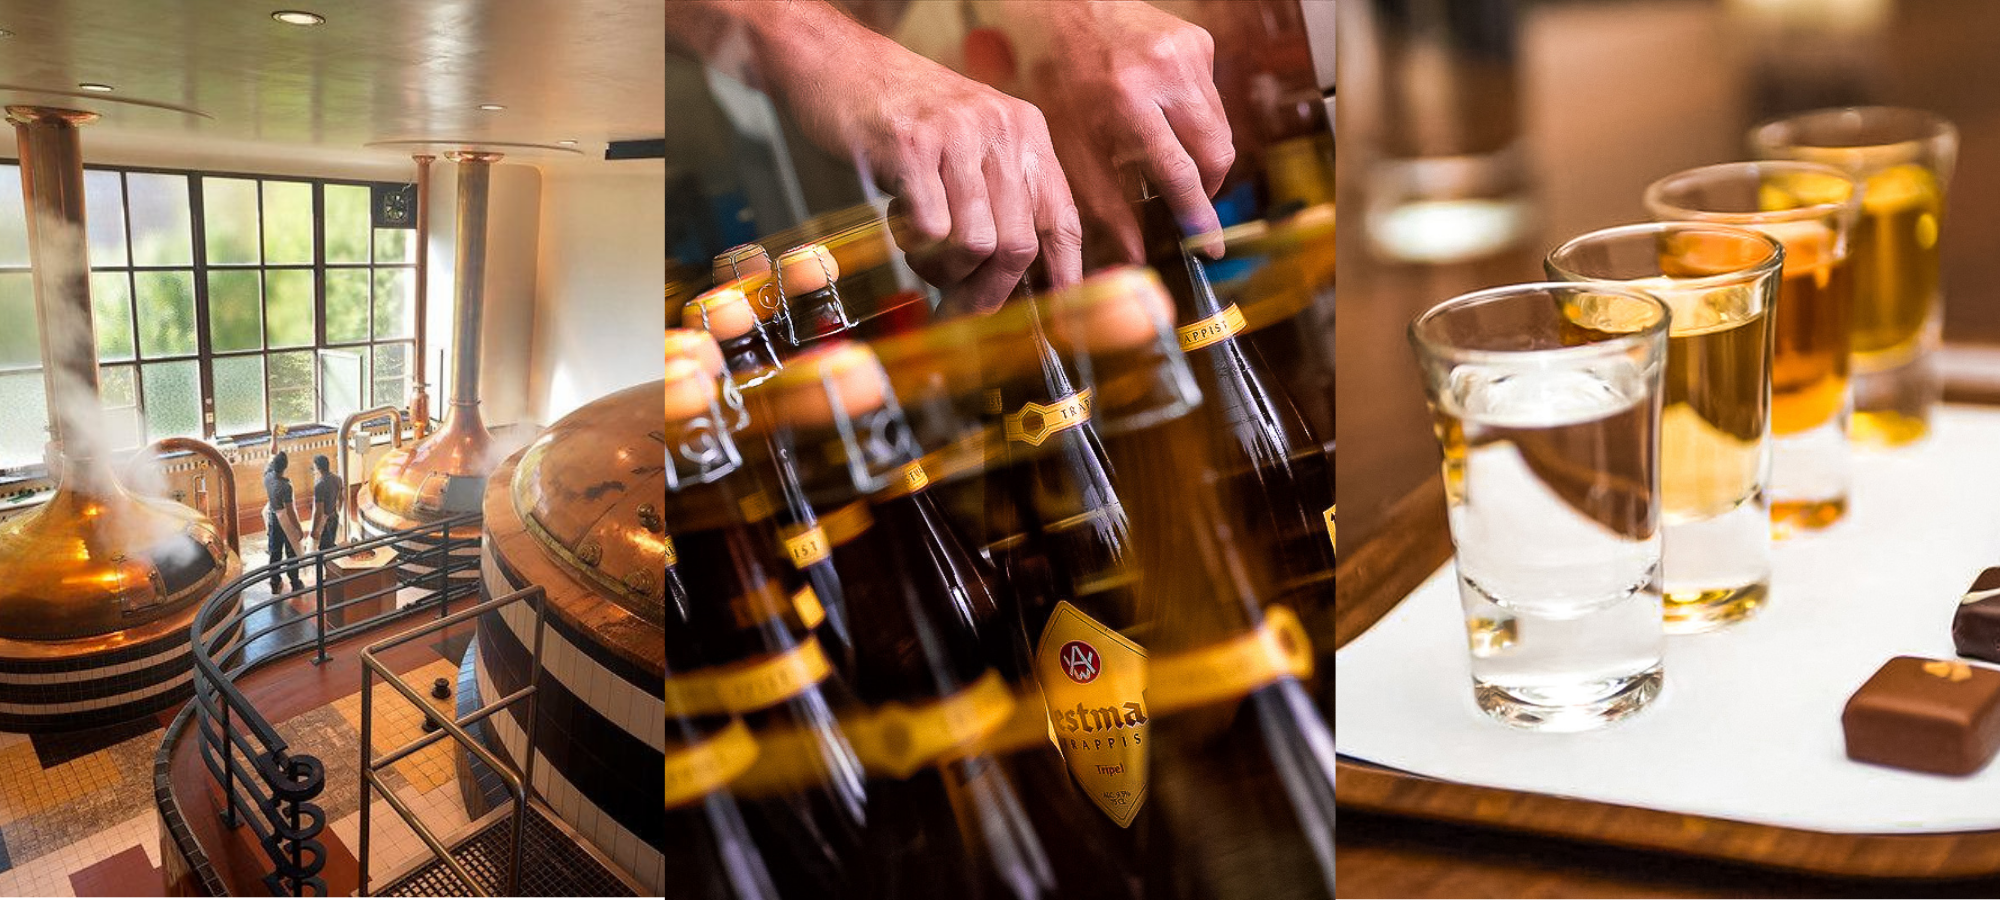 Image collage of Belgian trappist beer